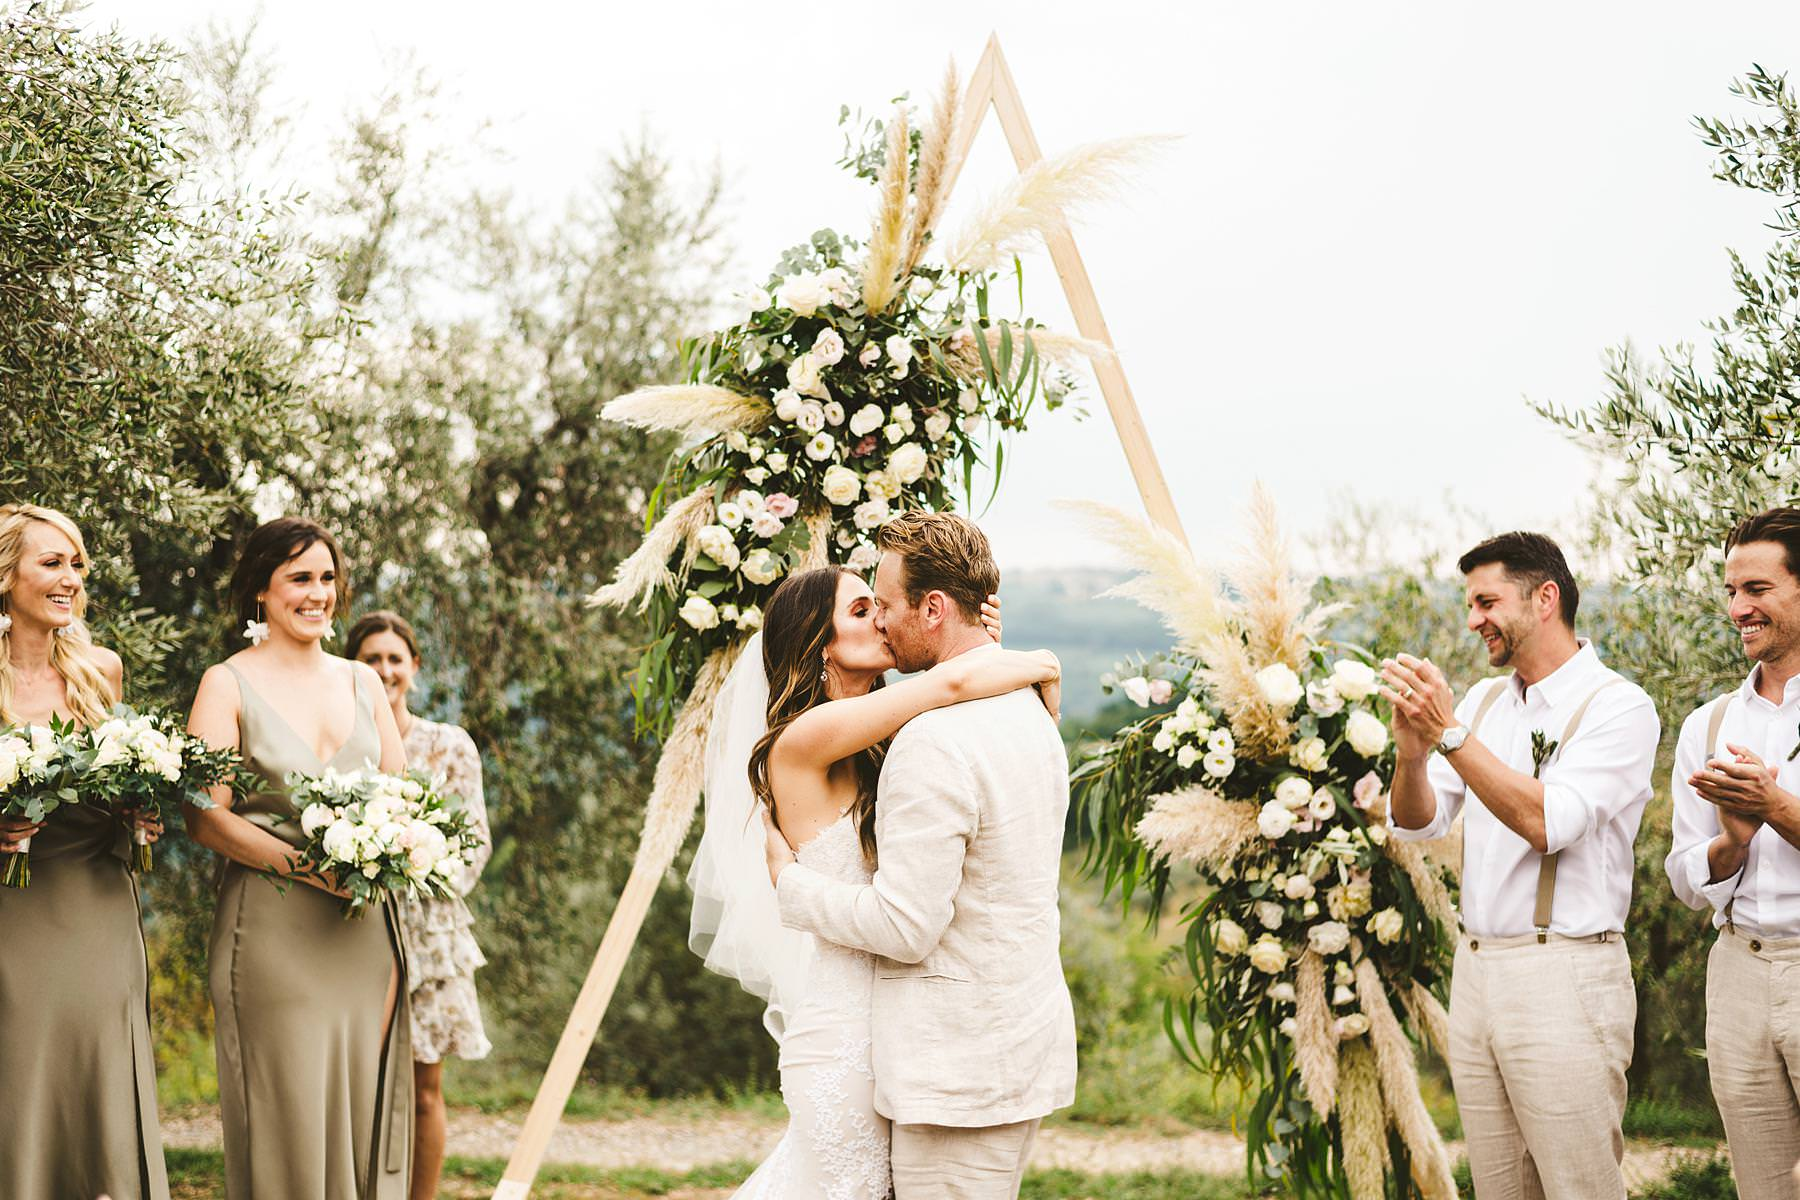 Lovely bride and groom first kiss framed by the olive groves of Chianti at the historic residence of Villa Il Poggiale in the countryside of Chianti